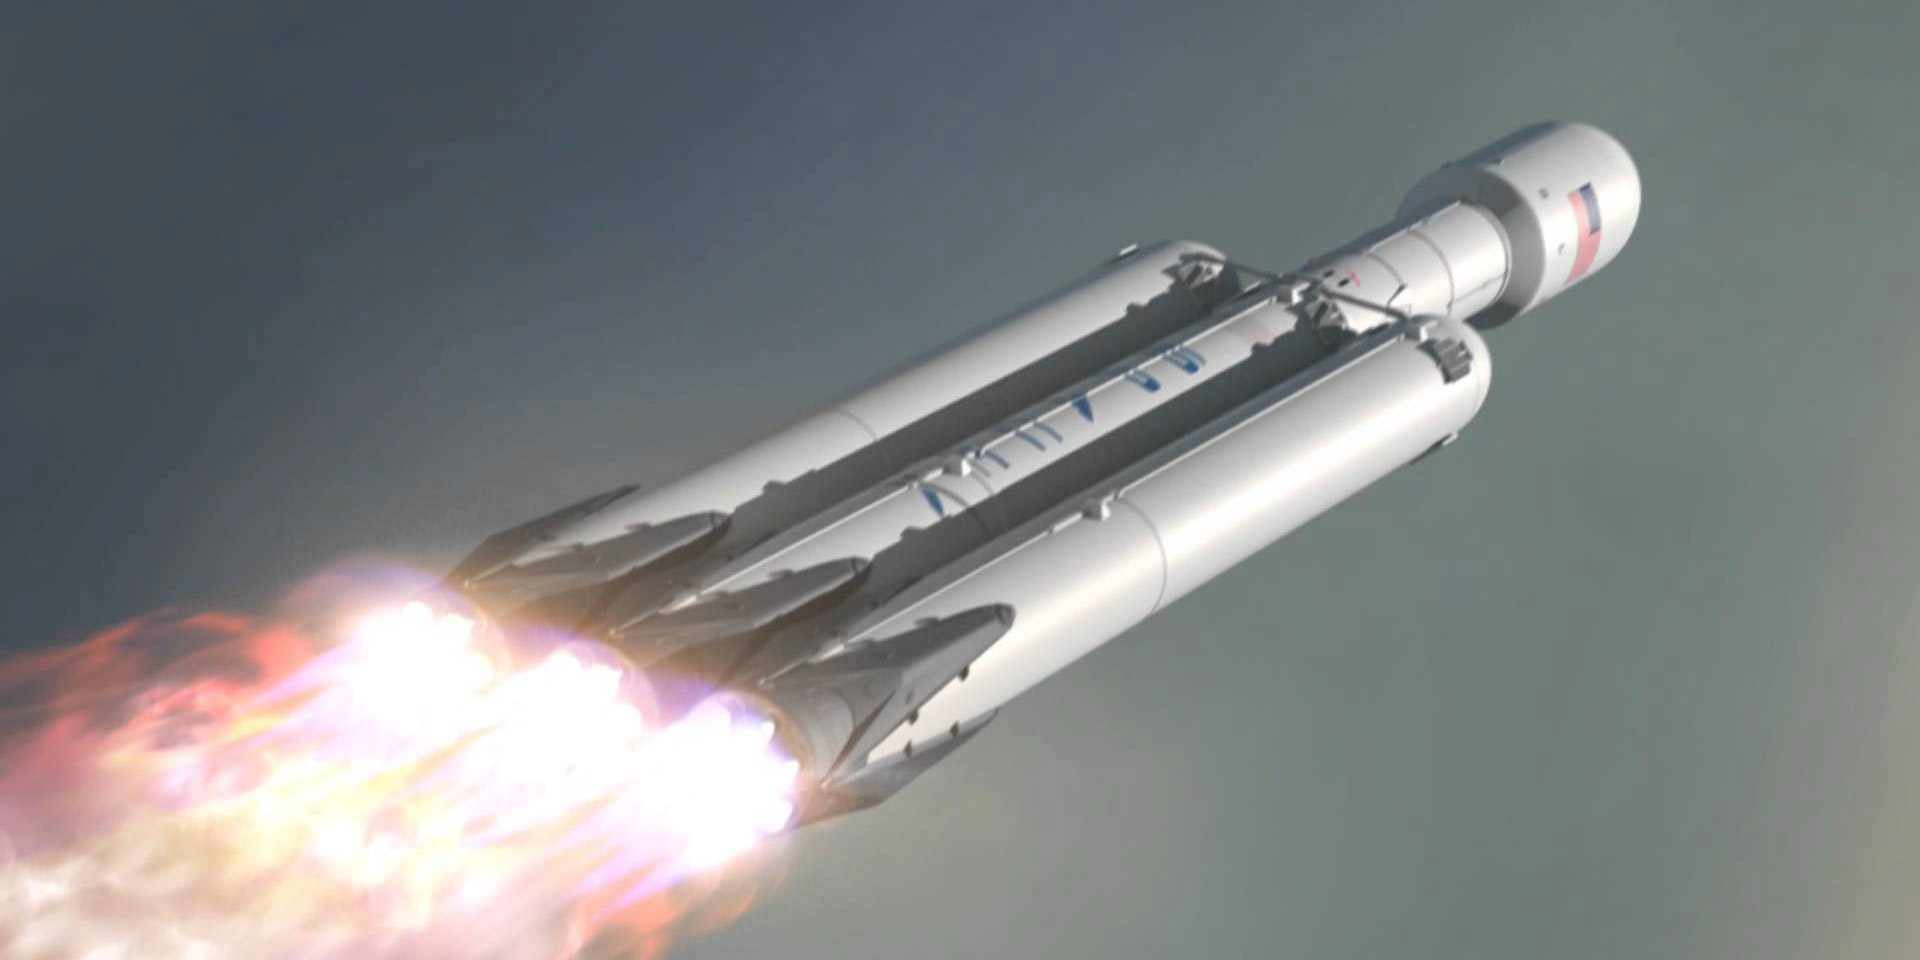 Falcon Heavy: Watch the Livestream of the SpaceX Rocket Launch Today